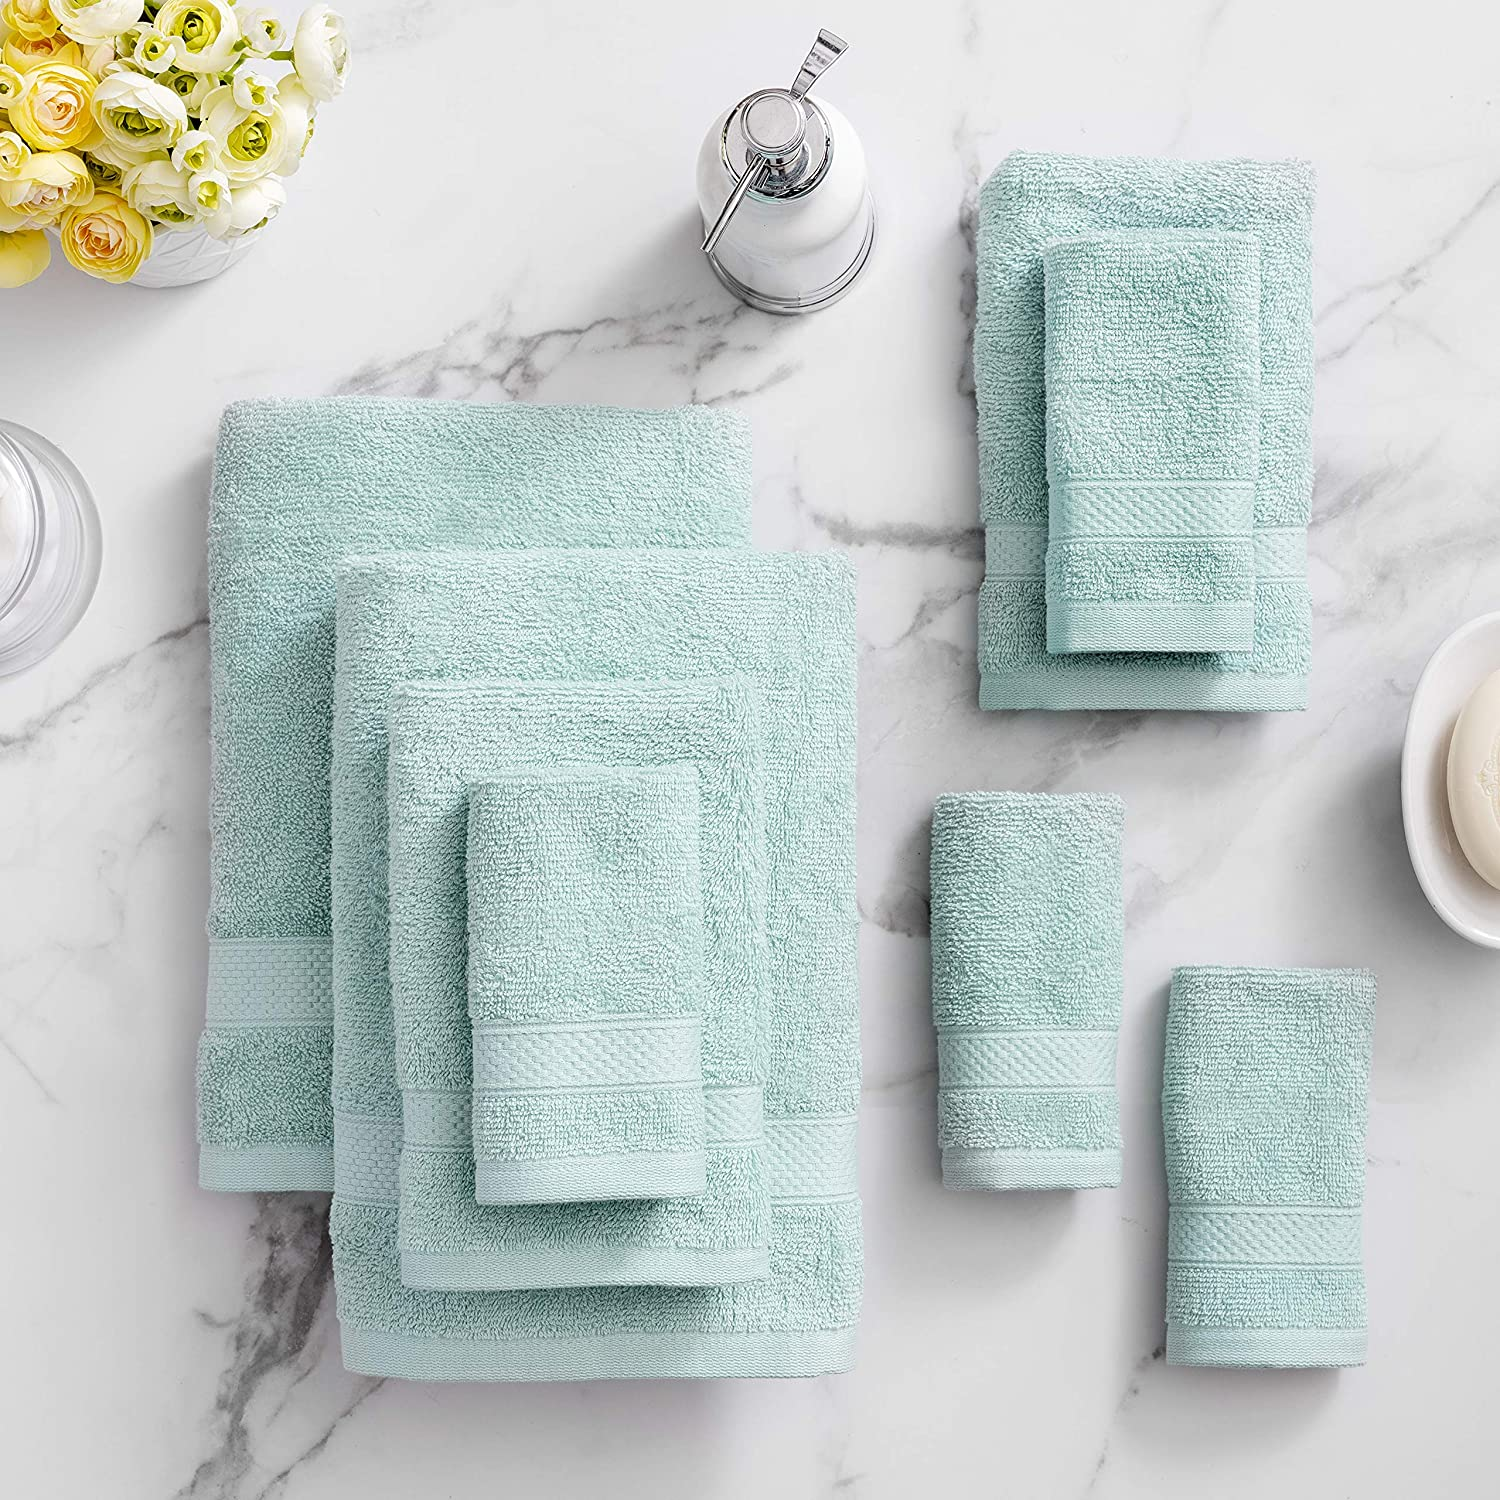 Soft Feel Hand Towel Pack 2 Hand Towels Quick Dry Craft Native White, 2 Hand Towels Highly Absorbent Towels Set Premium 500 GSM 100/% Egyptian Cotton